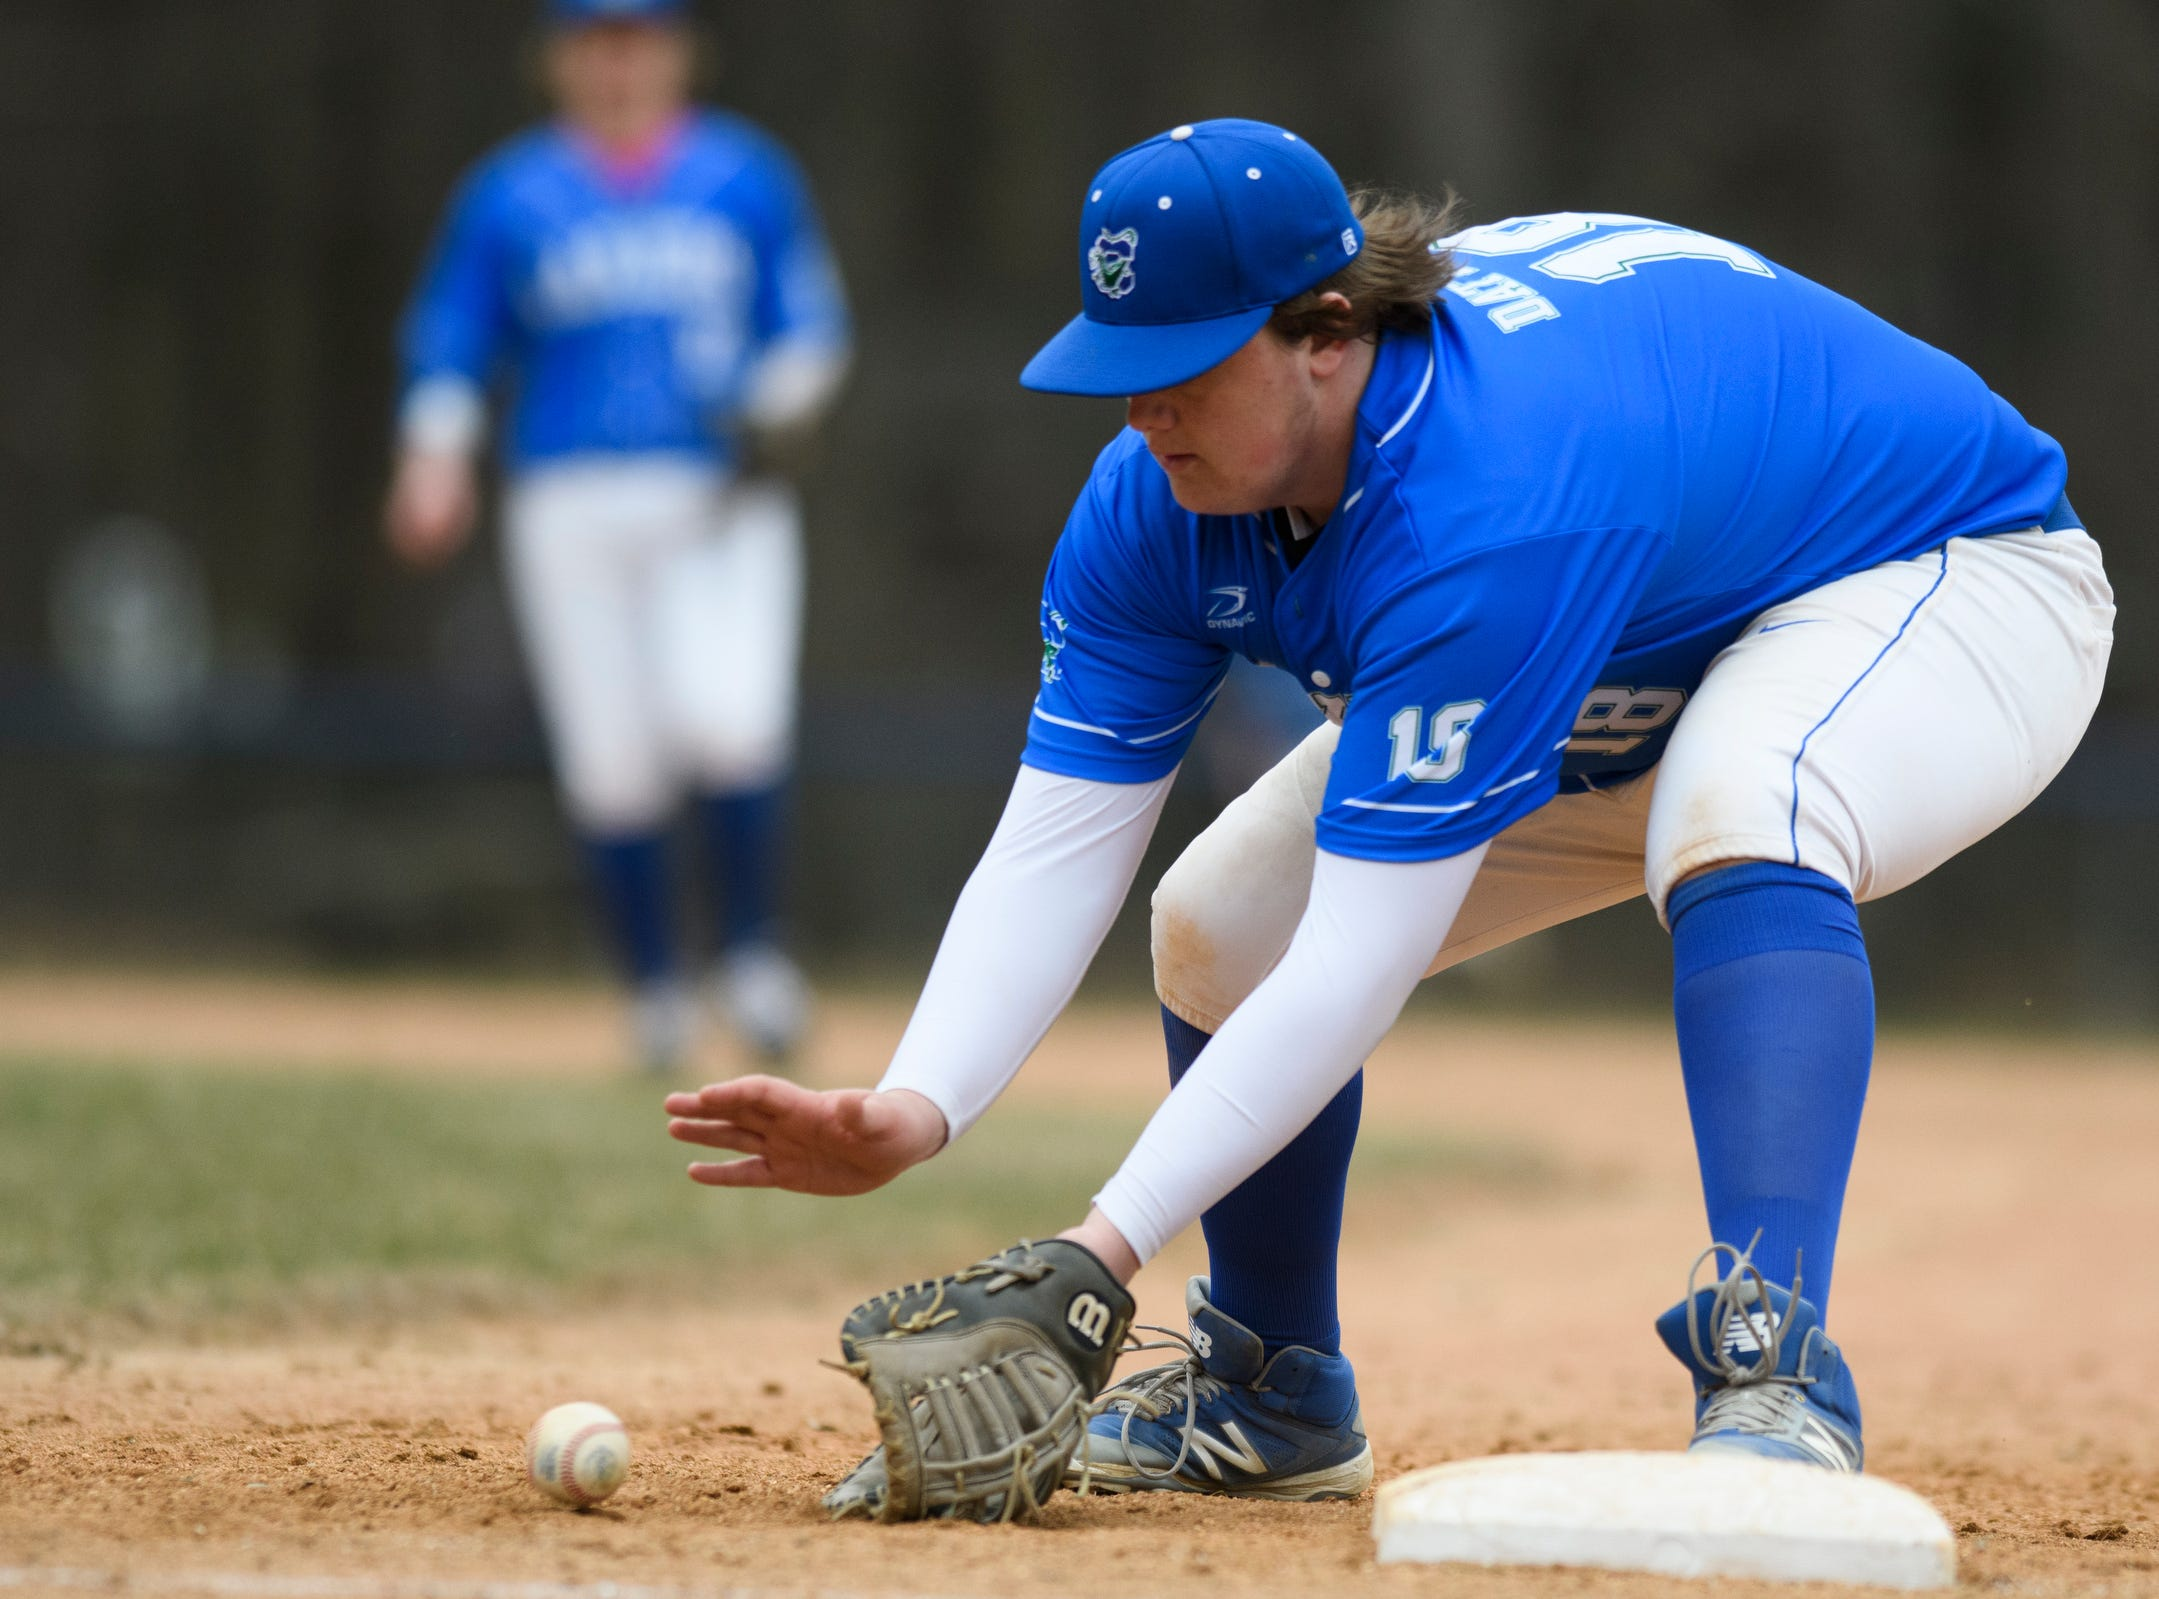 Colchester first baseman Justin Dattilio (18) plays the ground ball during the boys baseball game between the South Burlington Wolves and the Colchester Lakers at Colchester high school on Thursday afternoon April 18, 2019 in Colchester, Vermont.